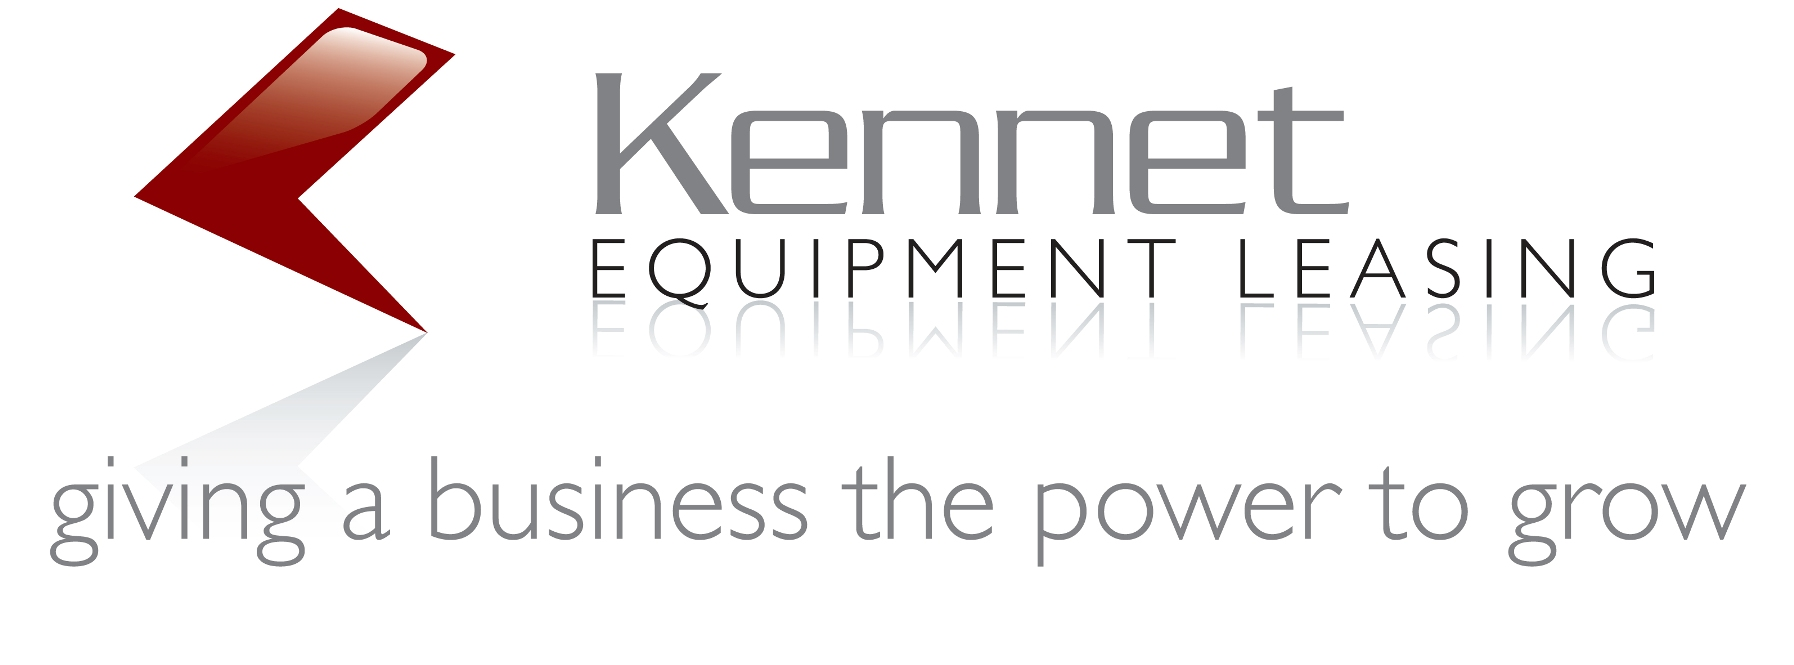 Kennet Leasing - Commercial Catering Equipment Leasing